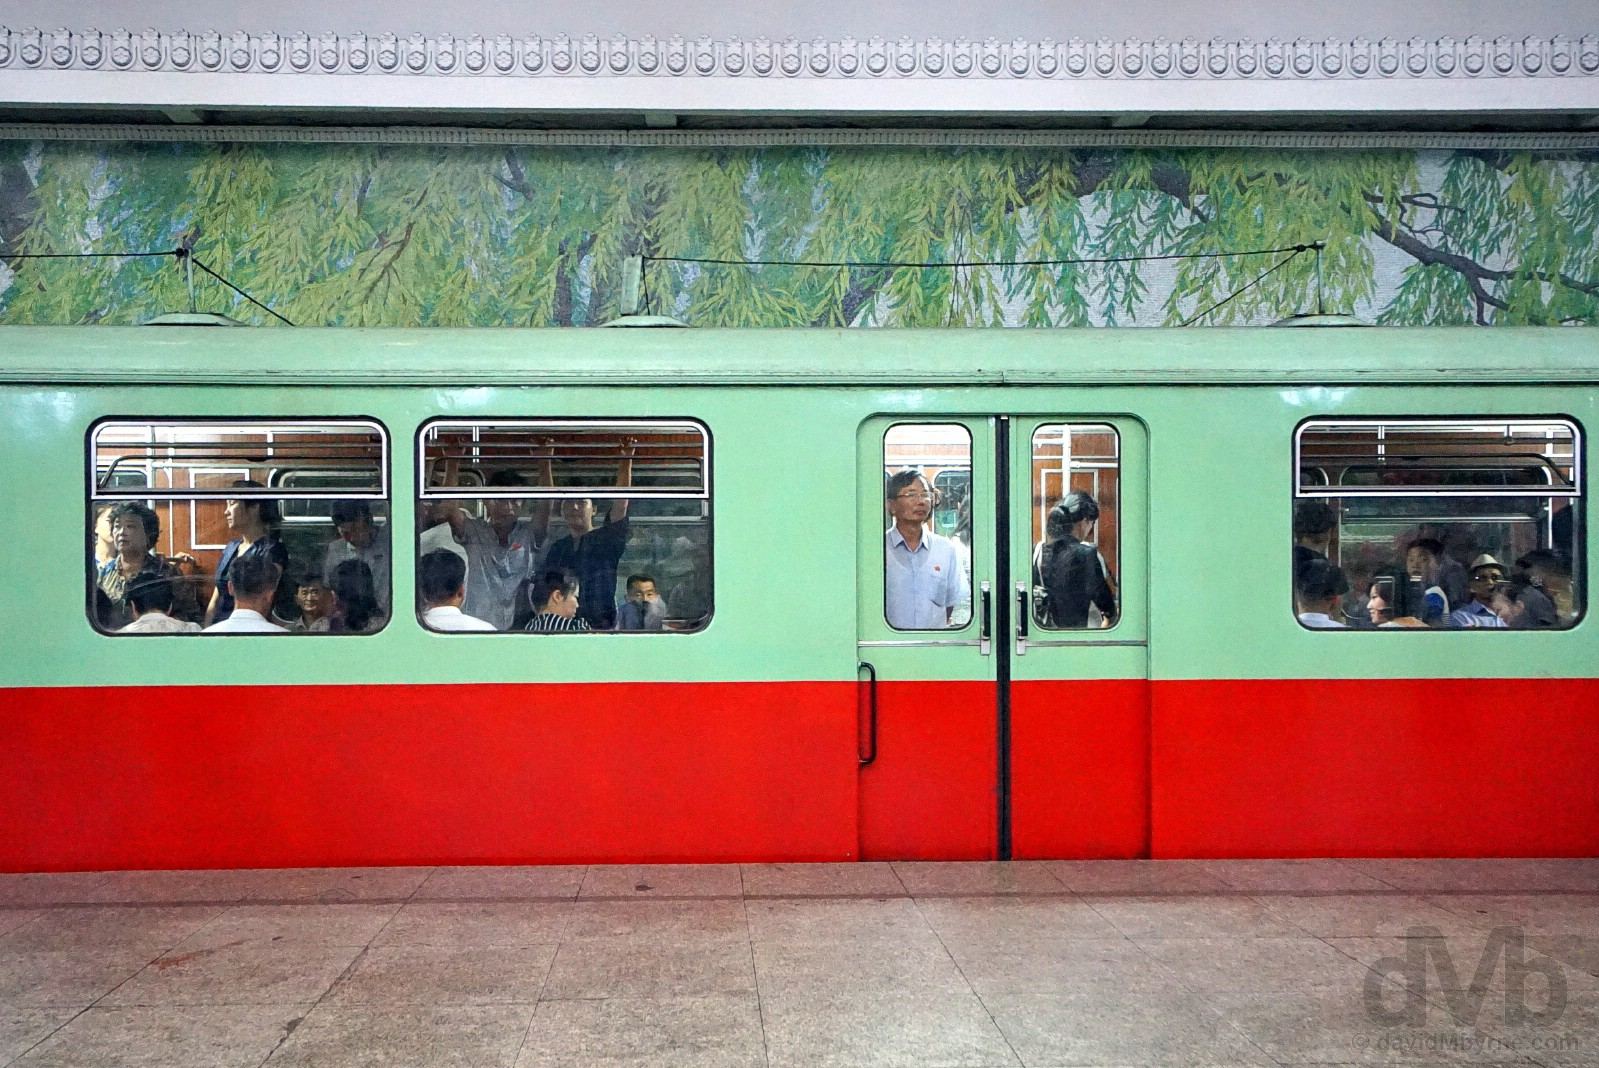 Metro, Pyongyang, North Korea. August 15, 2017.